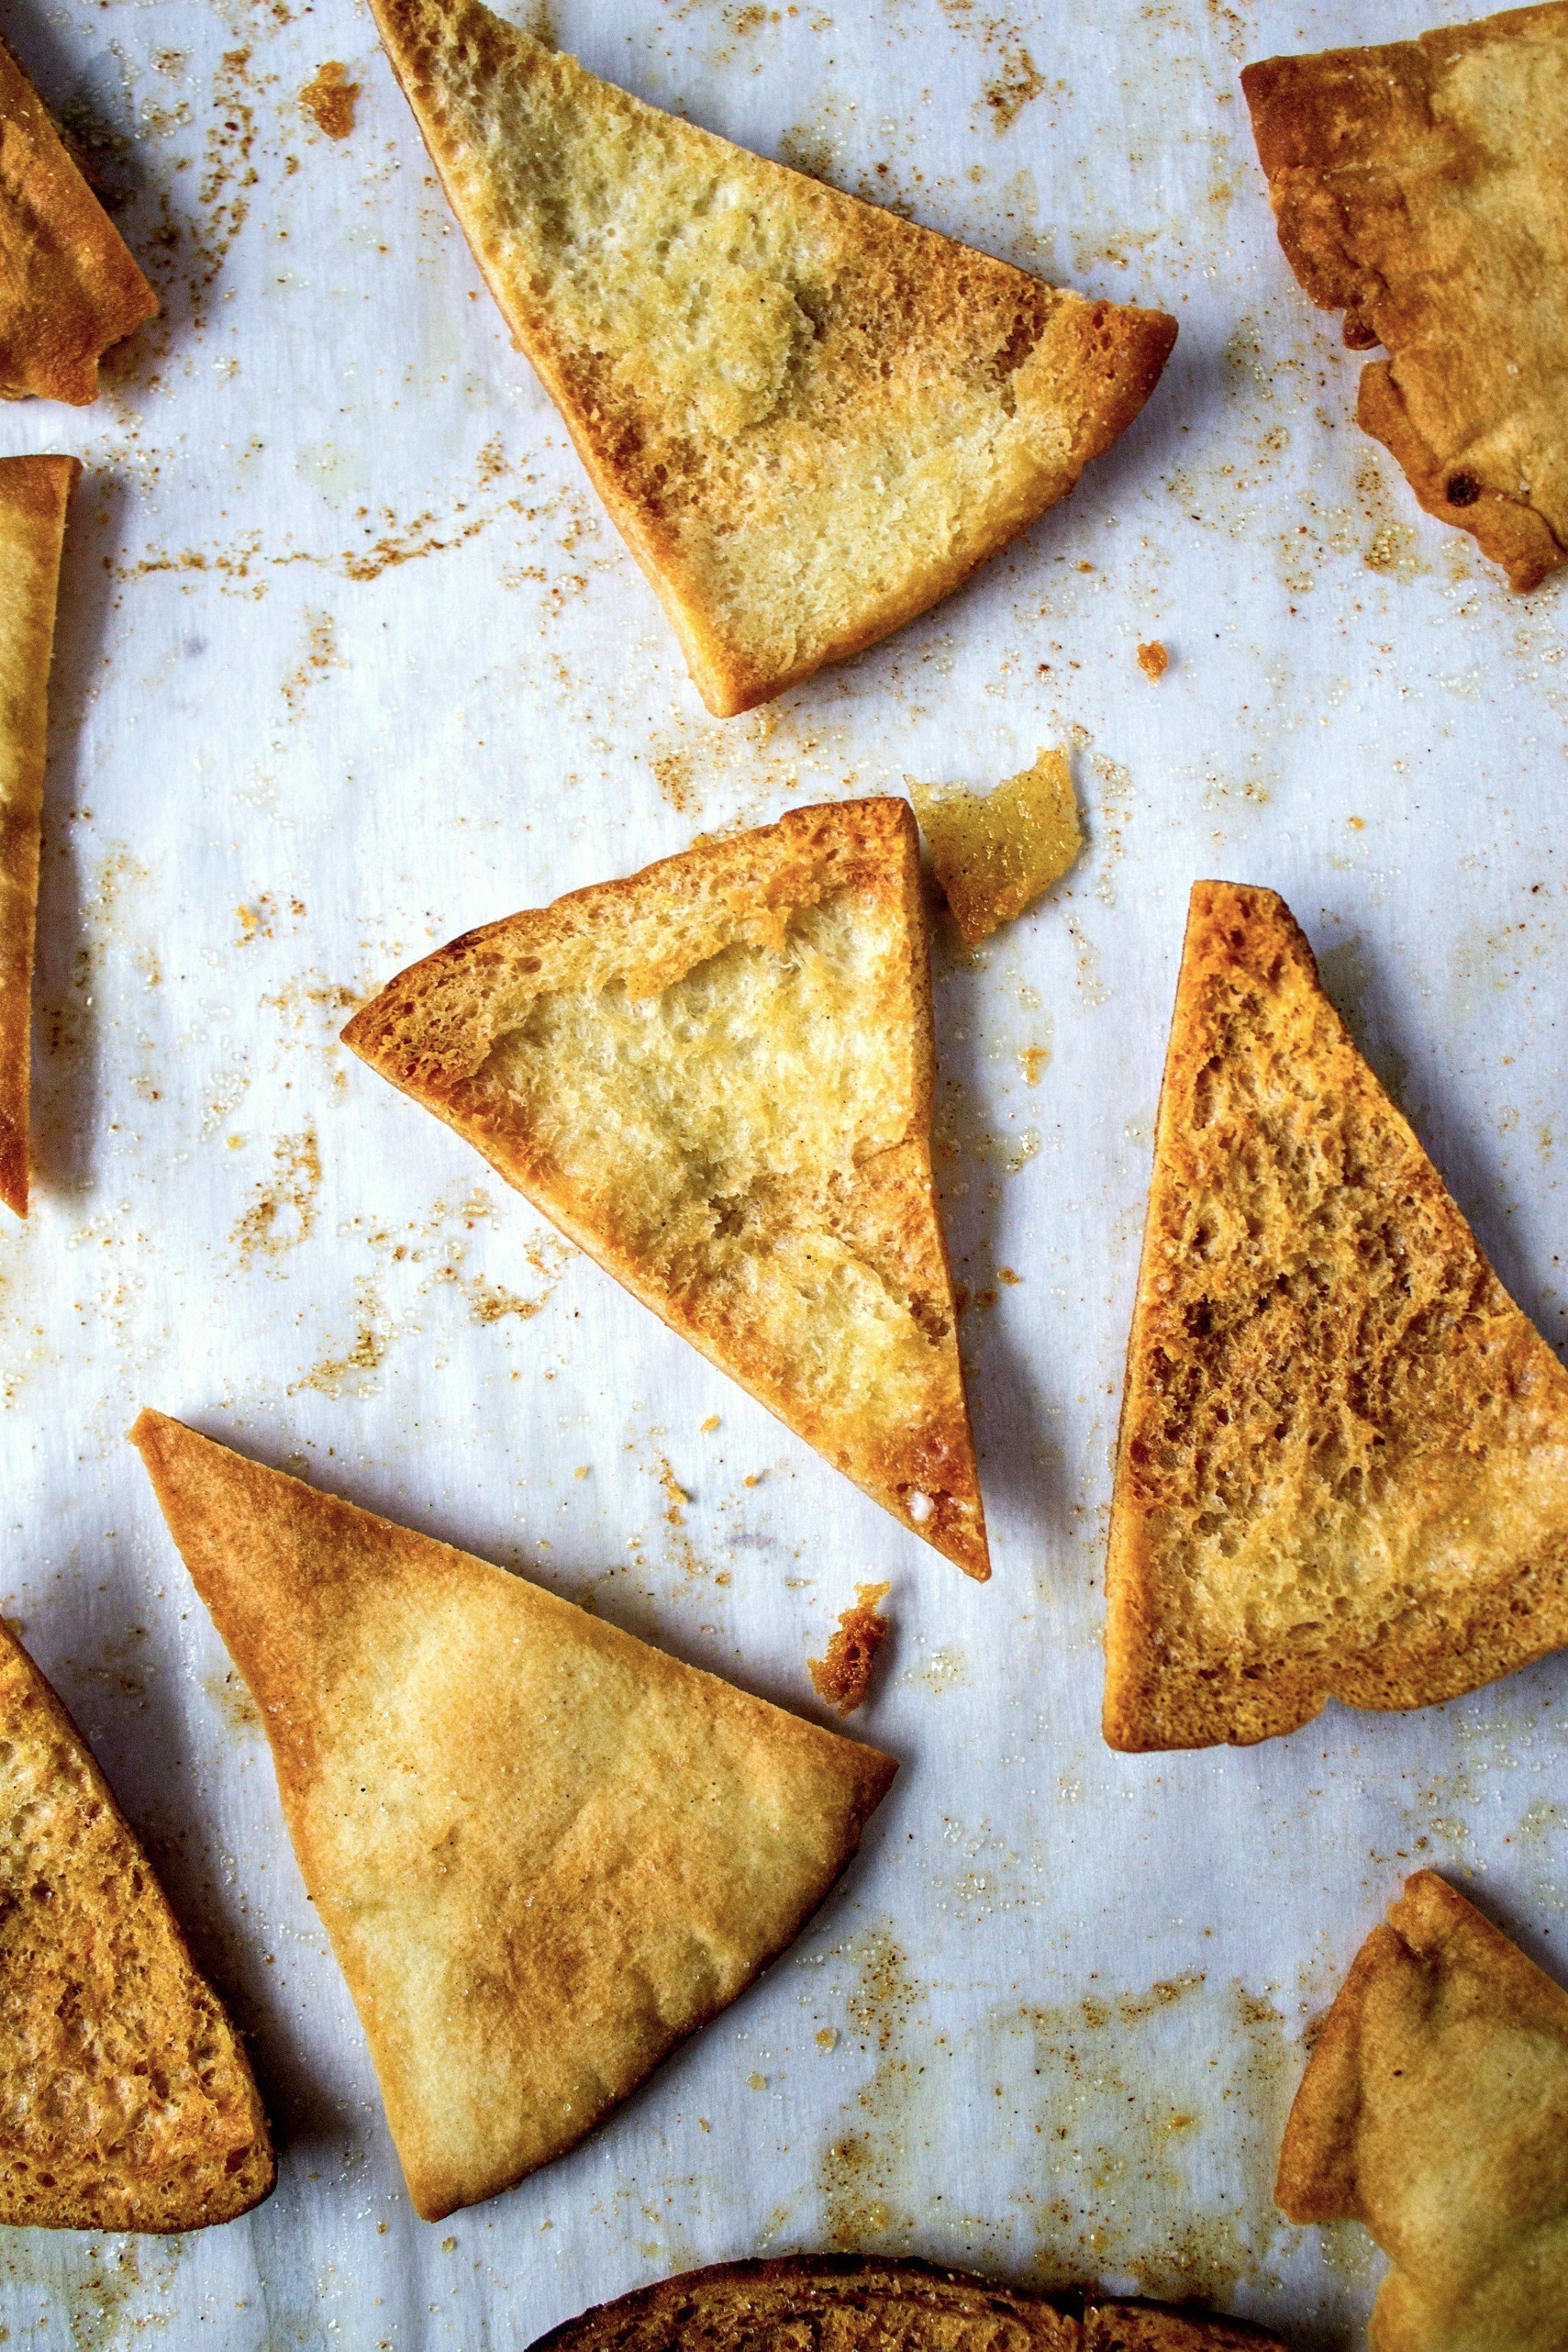 Sage and Browned Butter Pita Chips on a wax paper sheet